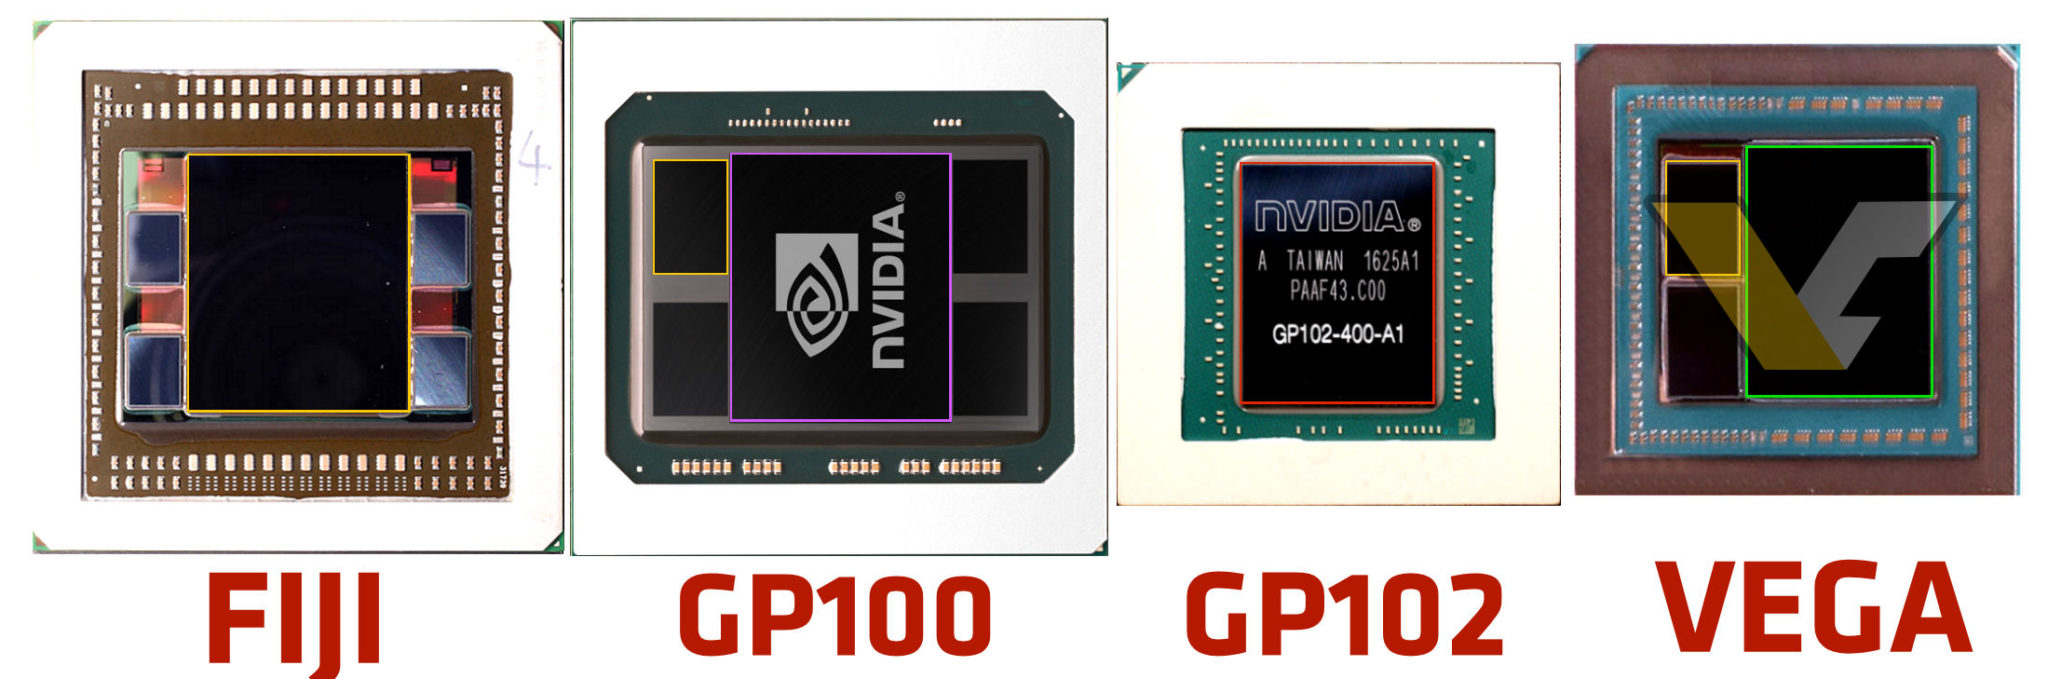 AMD VEGA GPU Pictured Features Two HBM2 Stacks